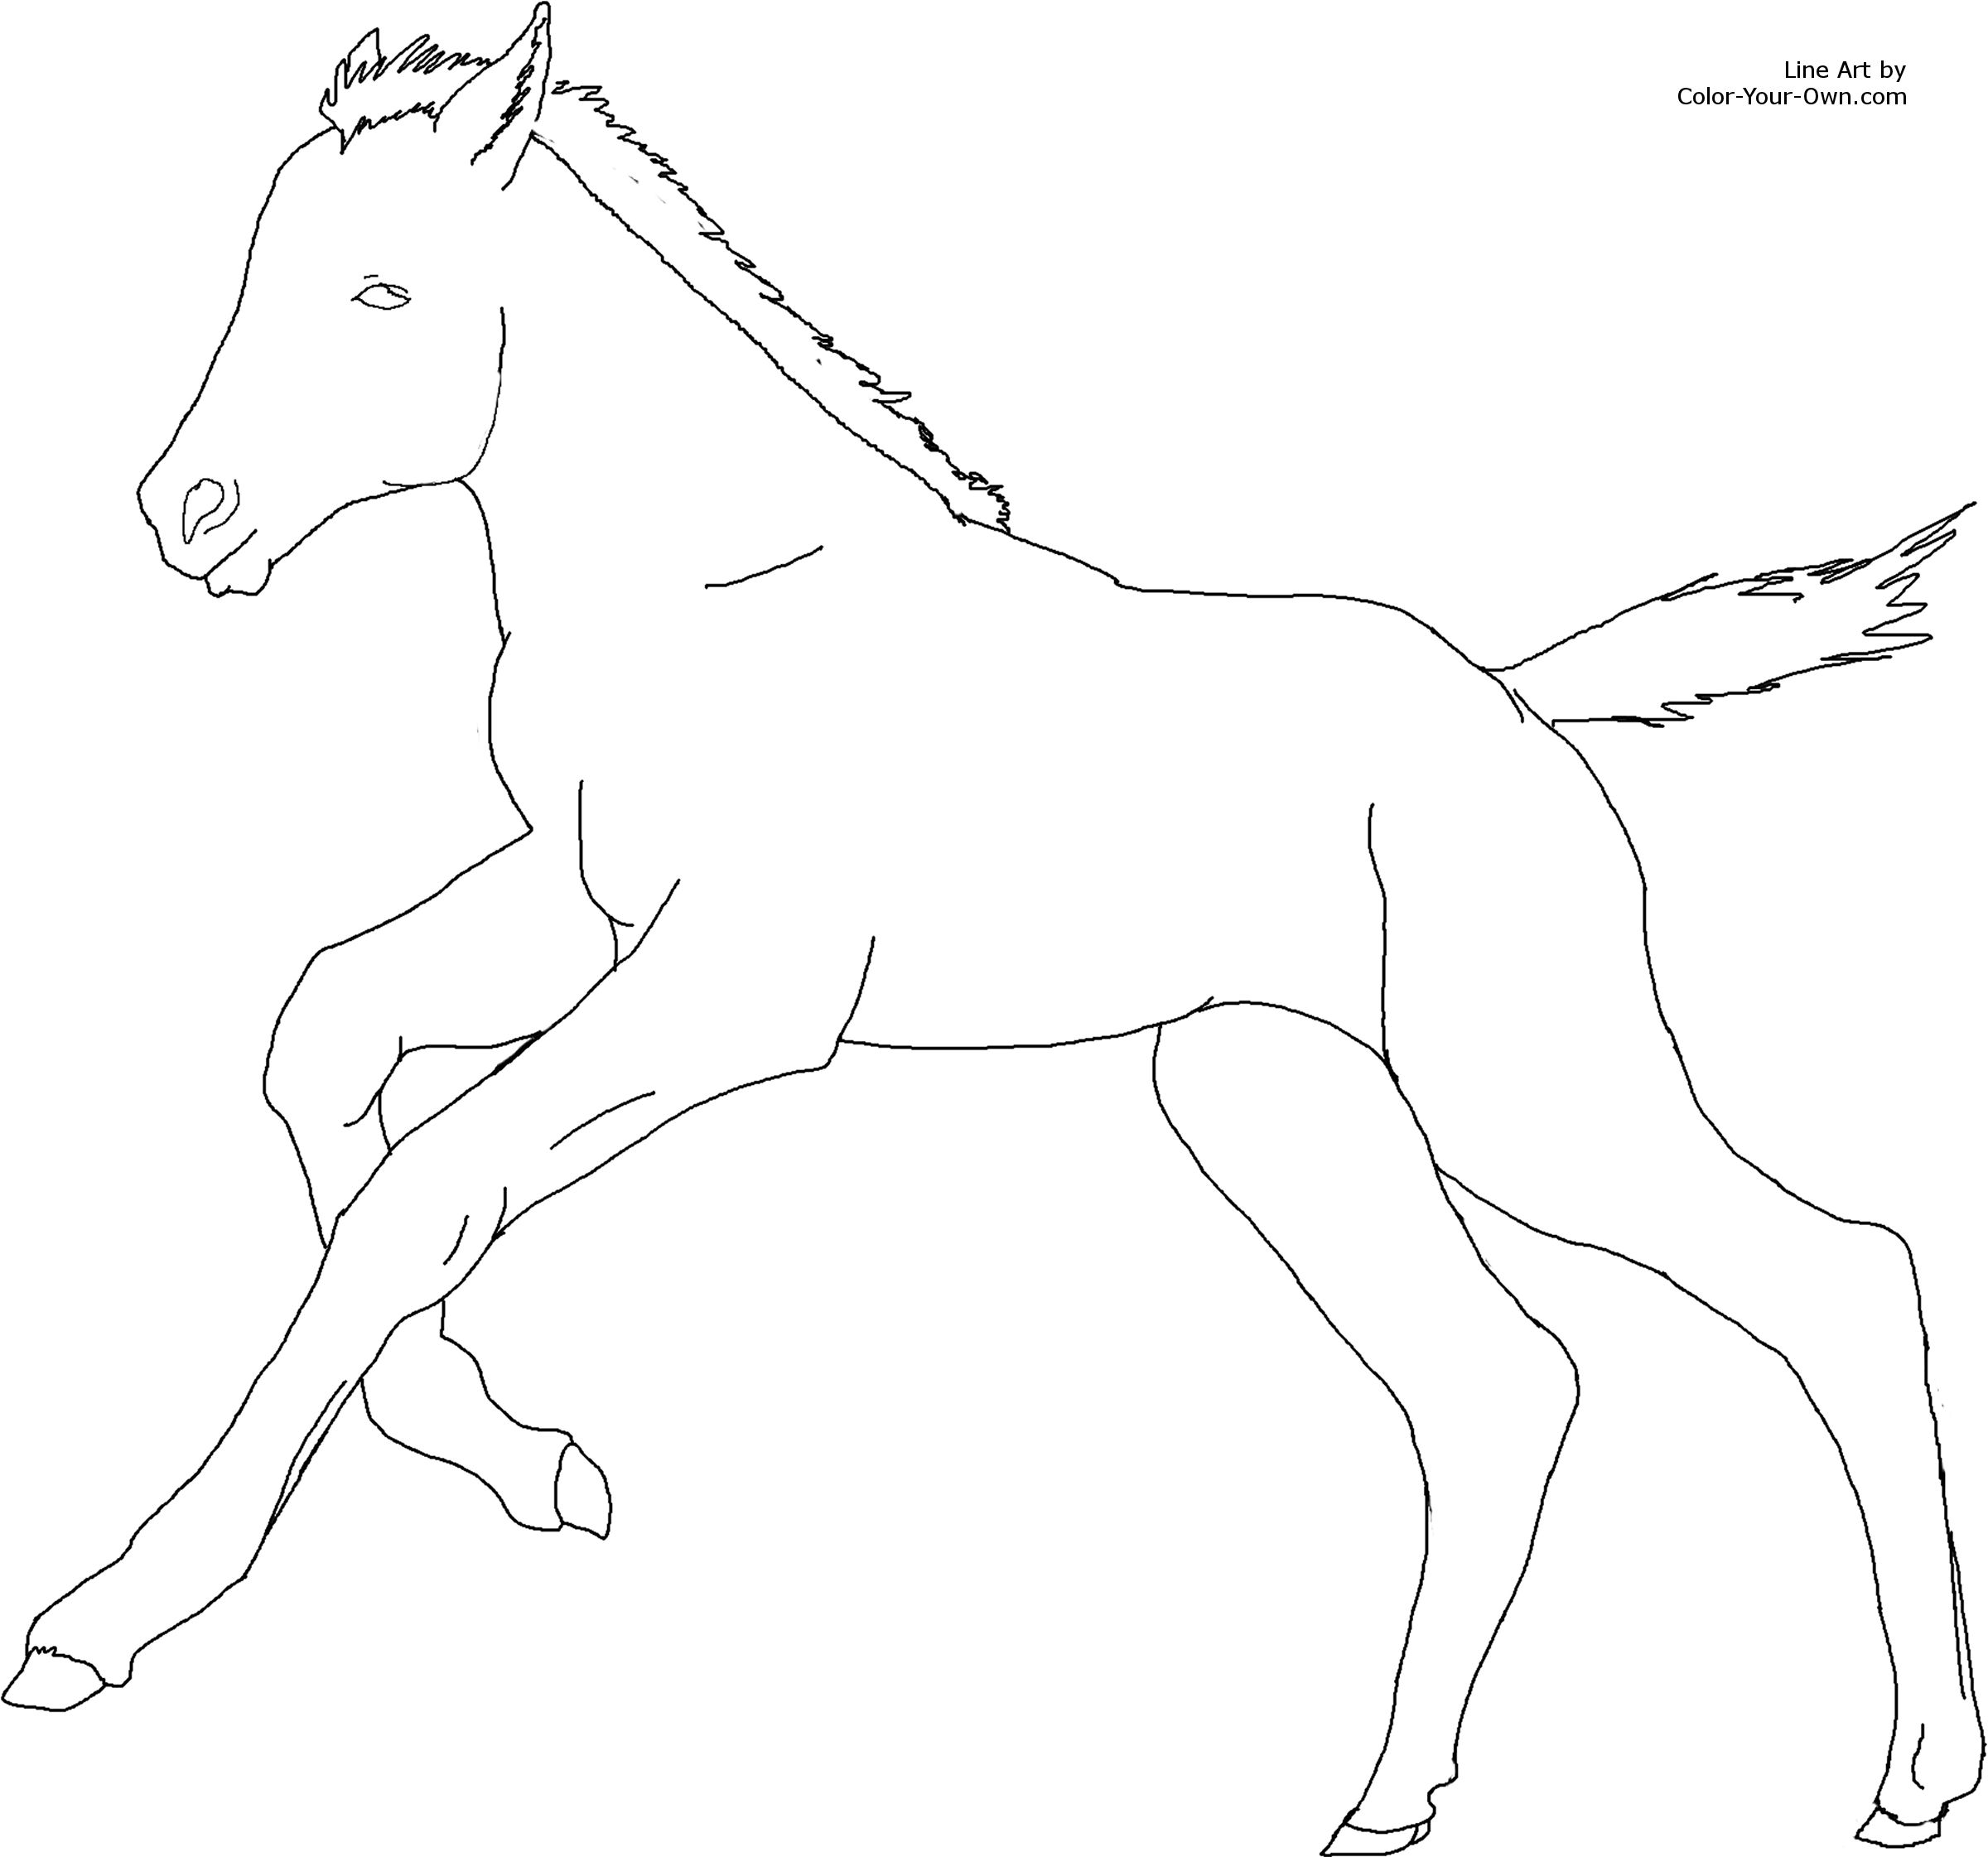 Cantering Foal Coloring Page